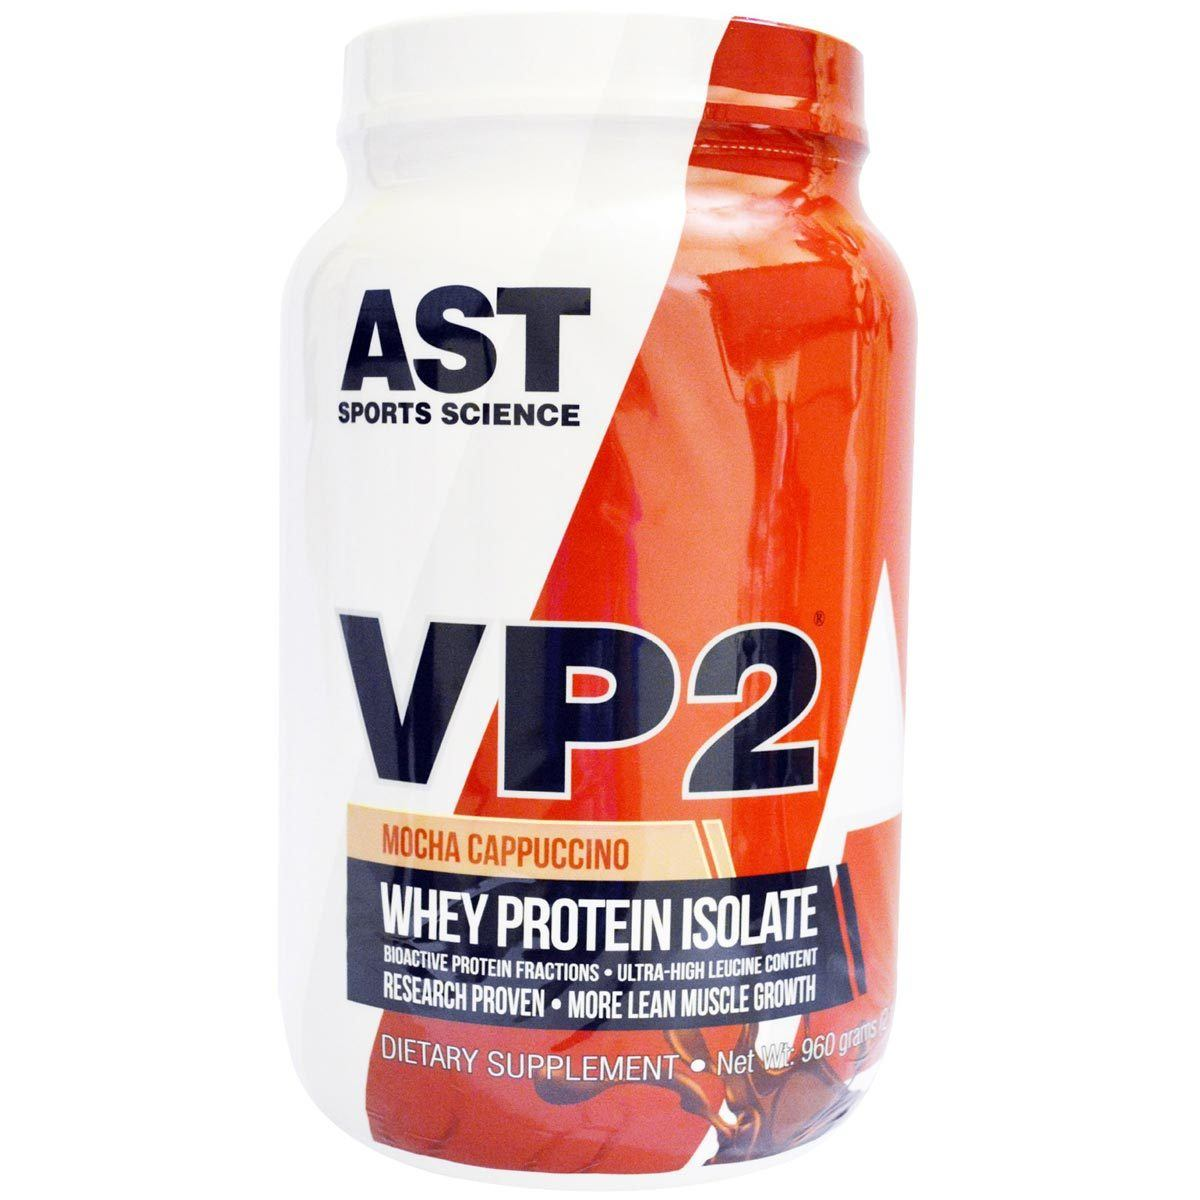 AST VP2 Whey Protein Isolate 2 lbs Protein AST  (1058166013995)